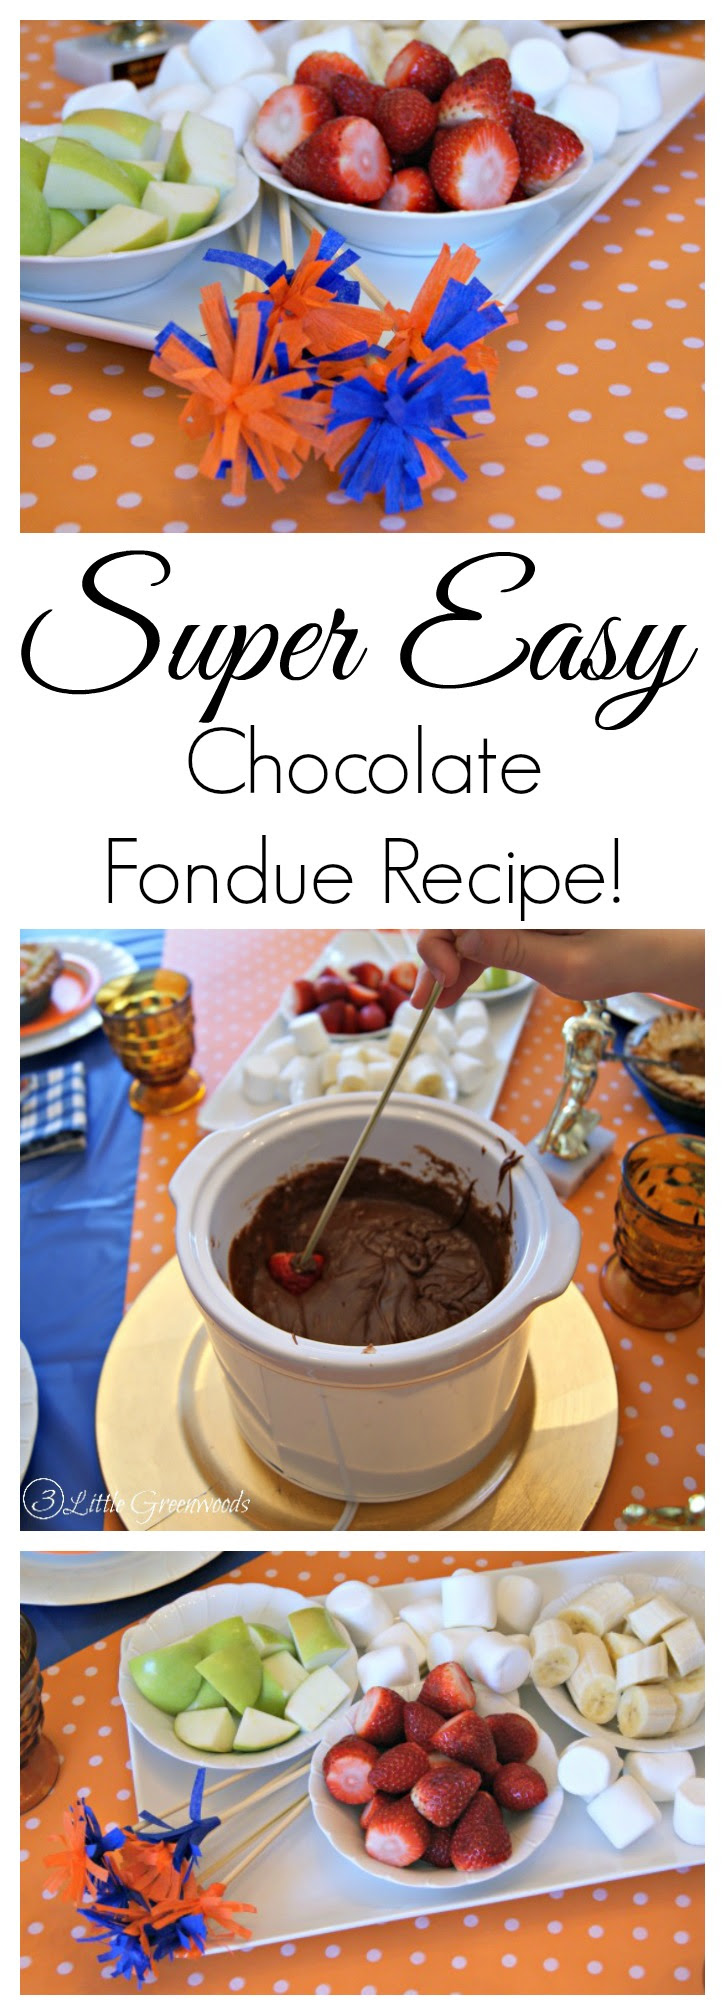 Super Easy Chocolate Fondue Recipe by 3 Little Greenwoods ...